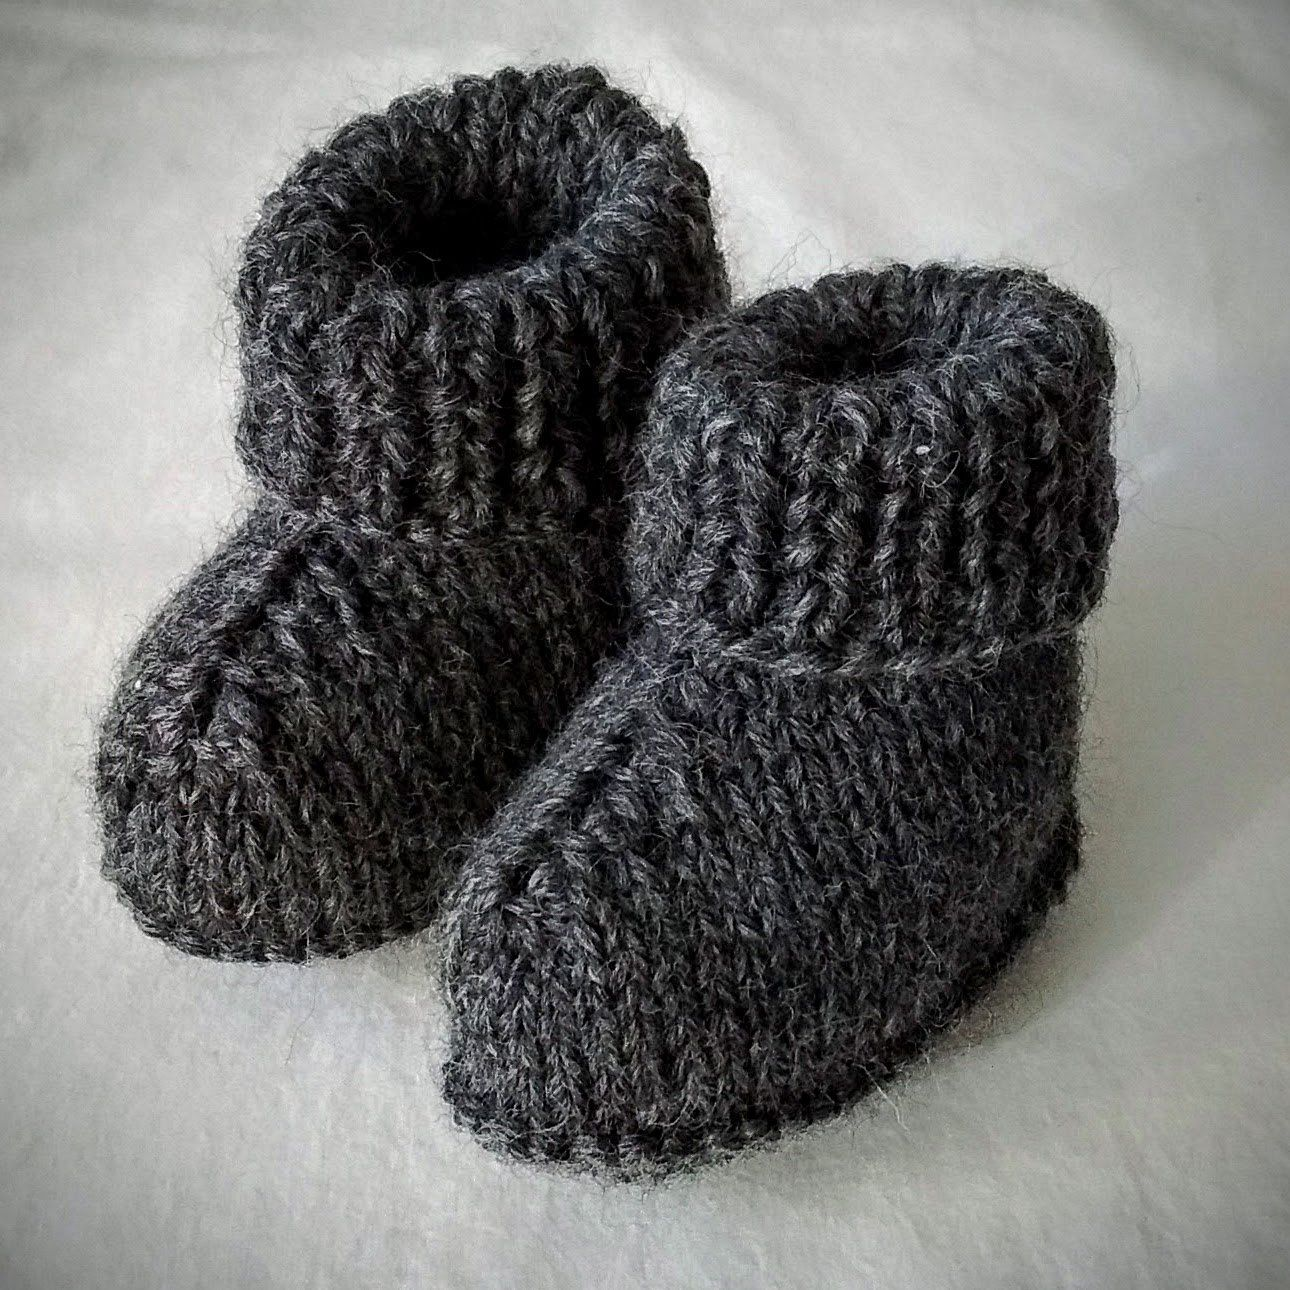 Pin on ~ Knit Baby Shoes ~